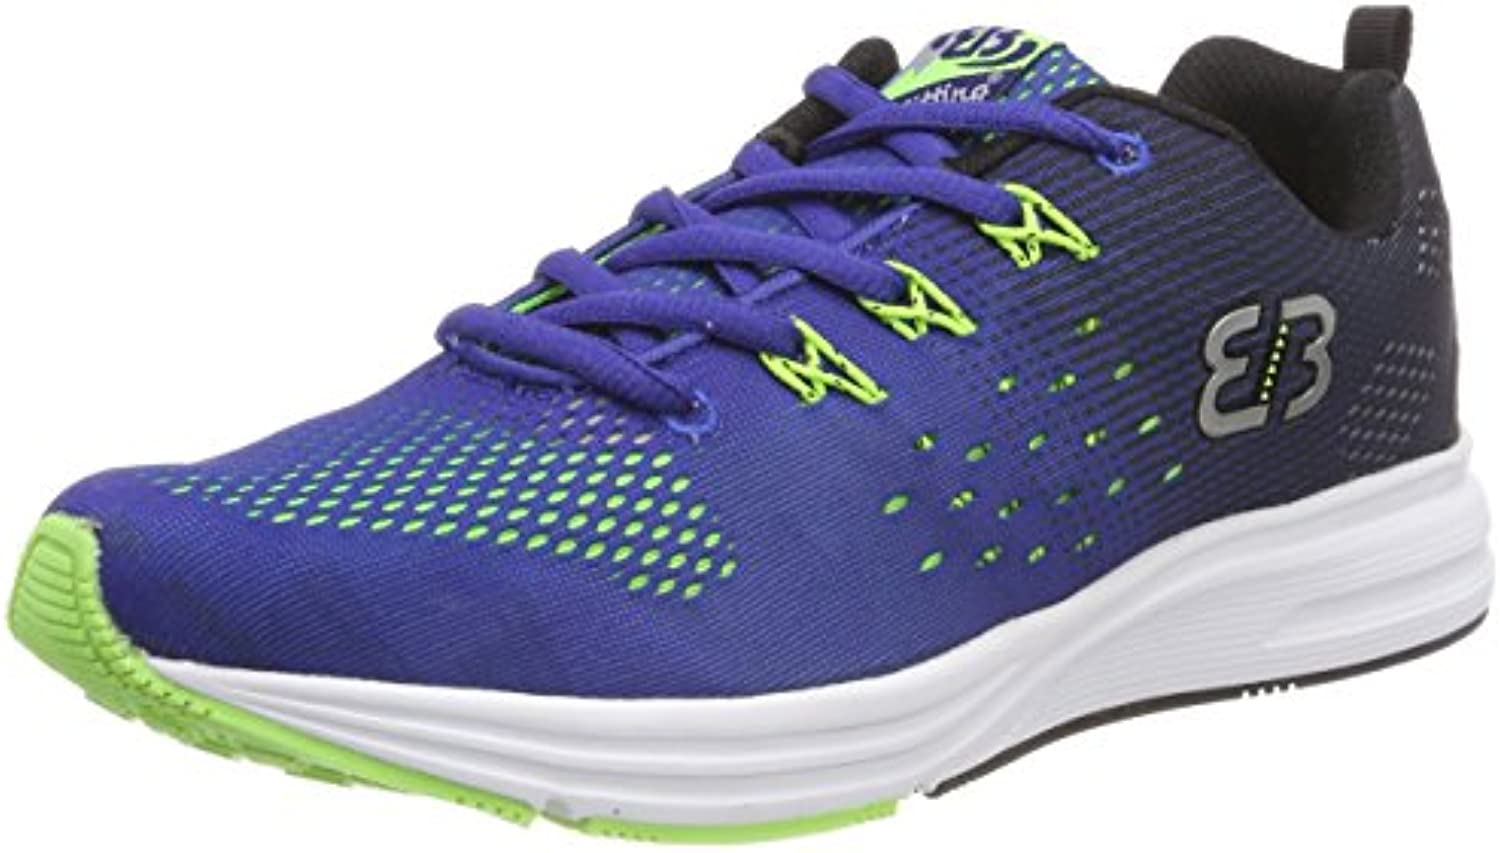 Bruetting Escape, Zapatillas de Entrenamiento Unisex Adulto